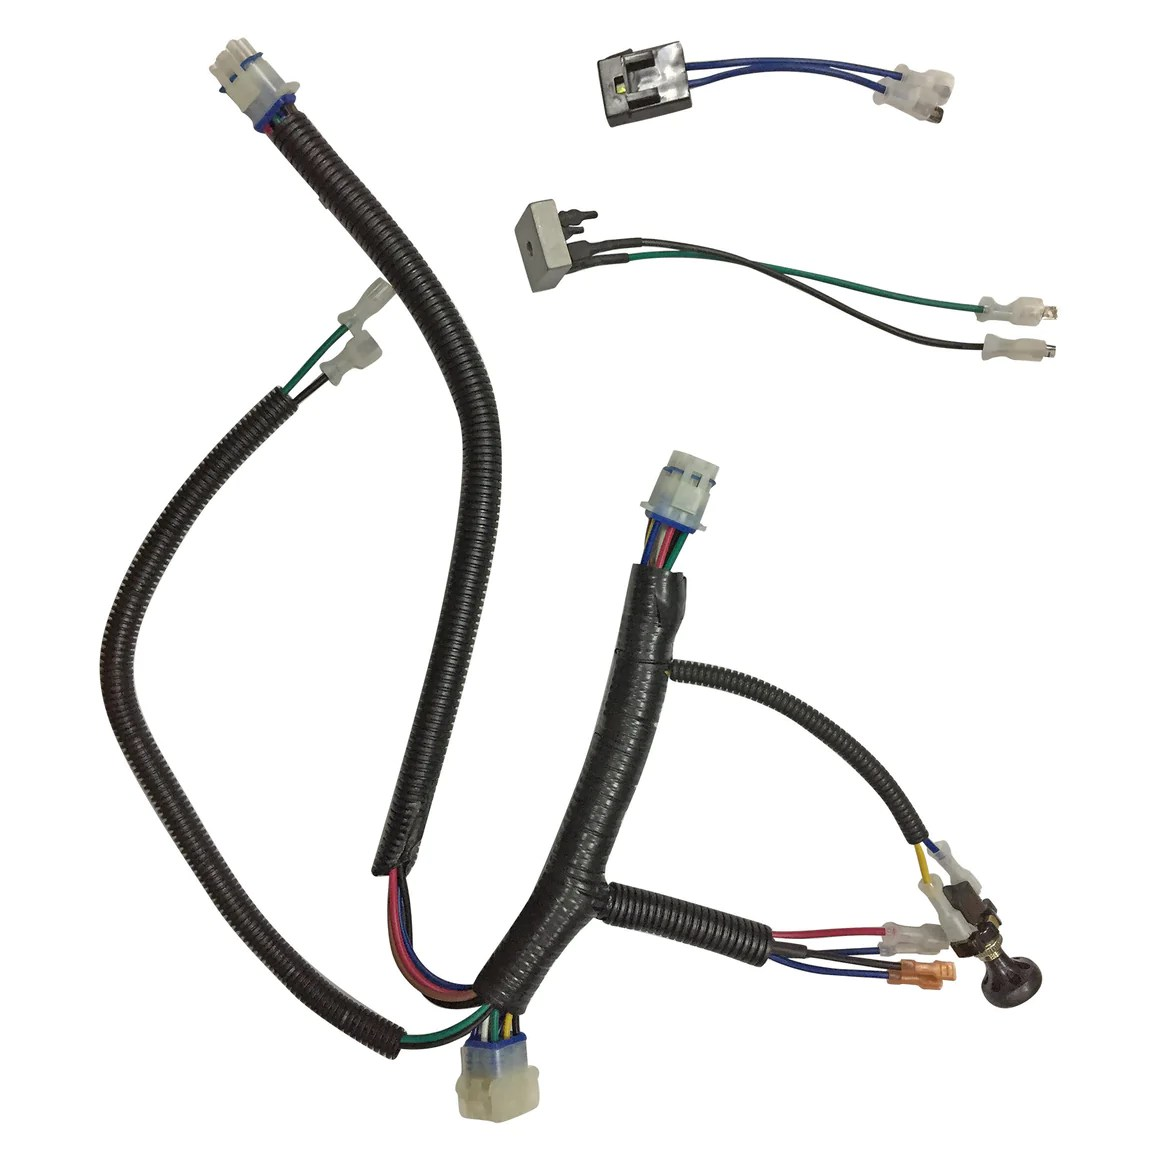 hight resolution of route 66 gas harness for club car precedent gas 2004 up